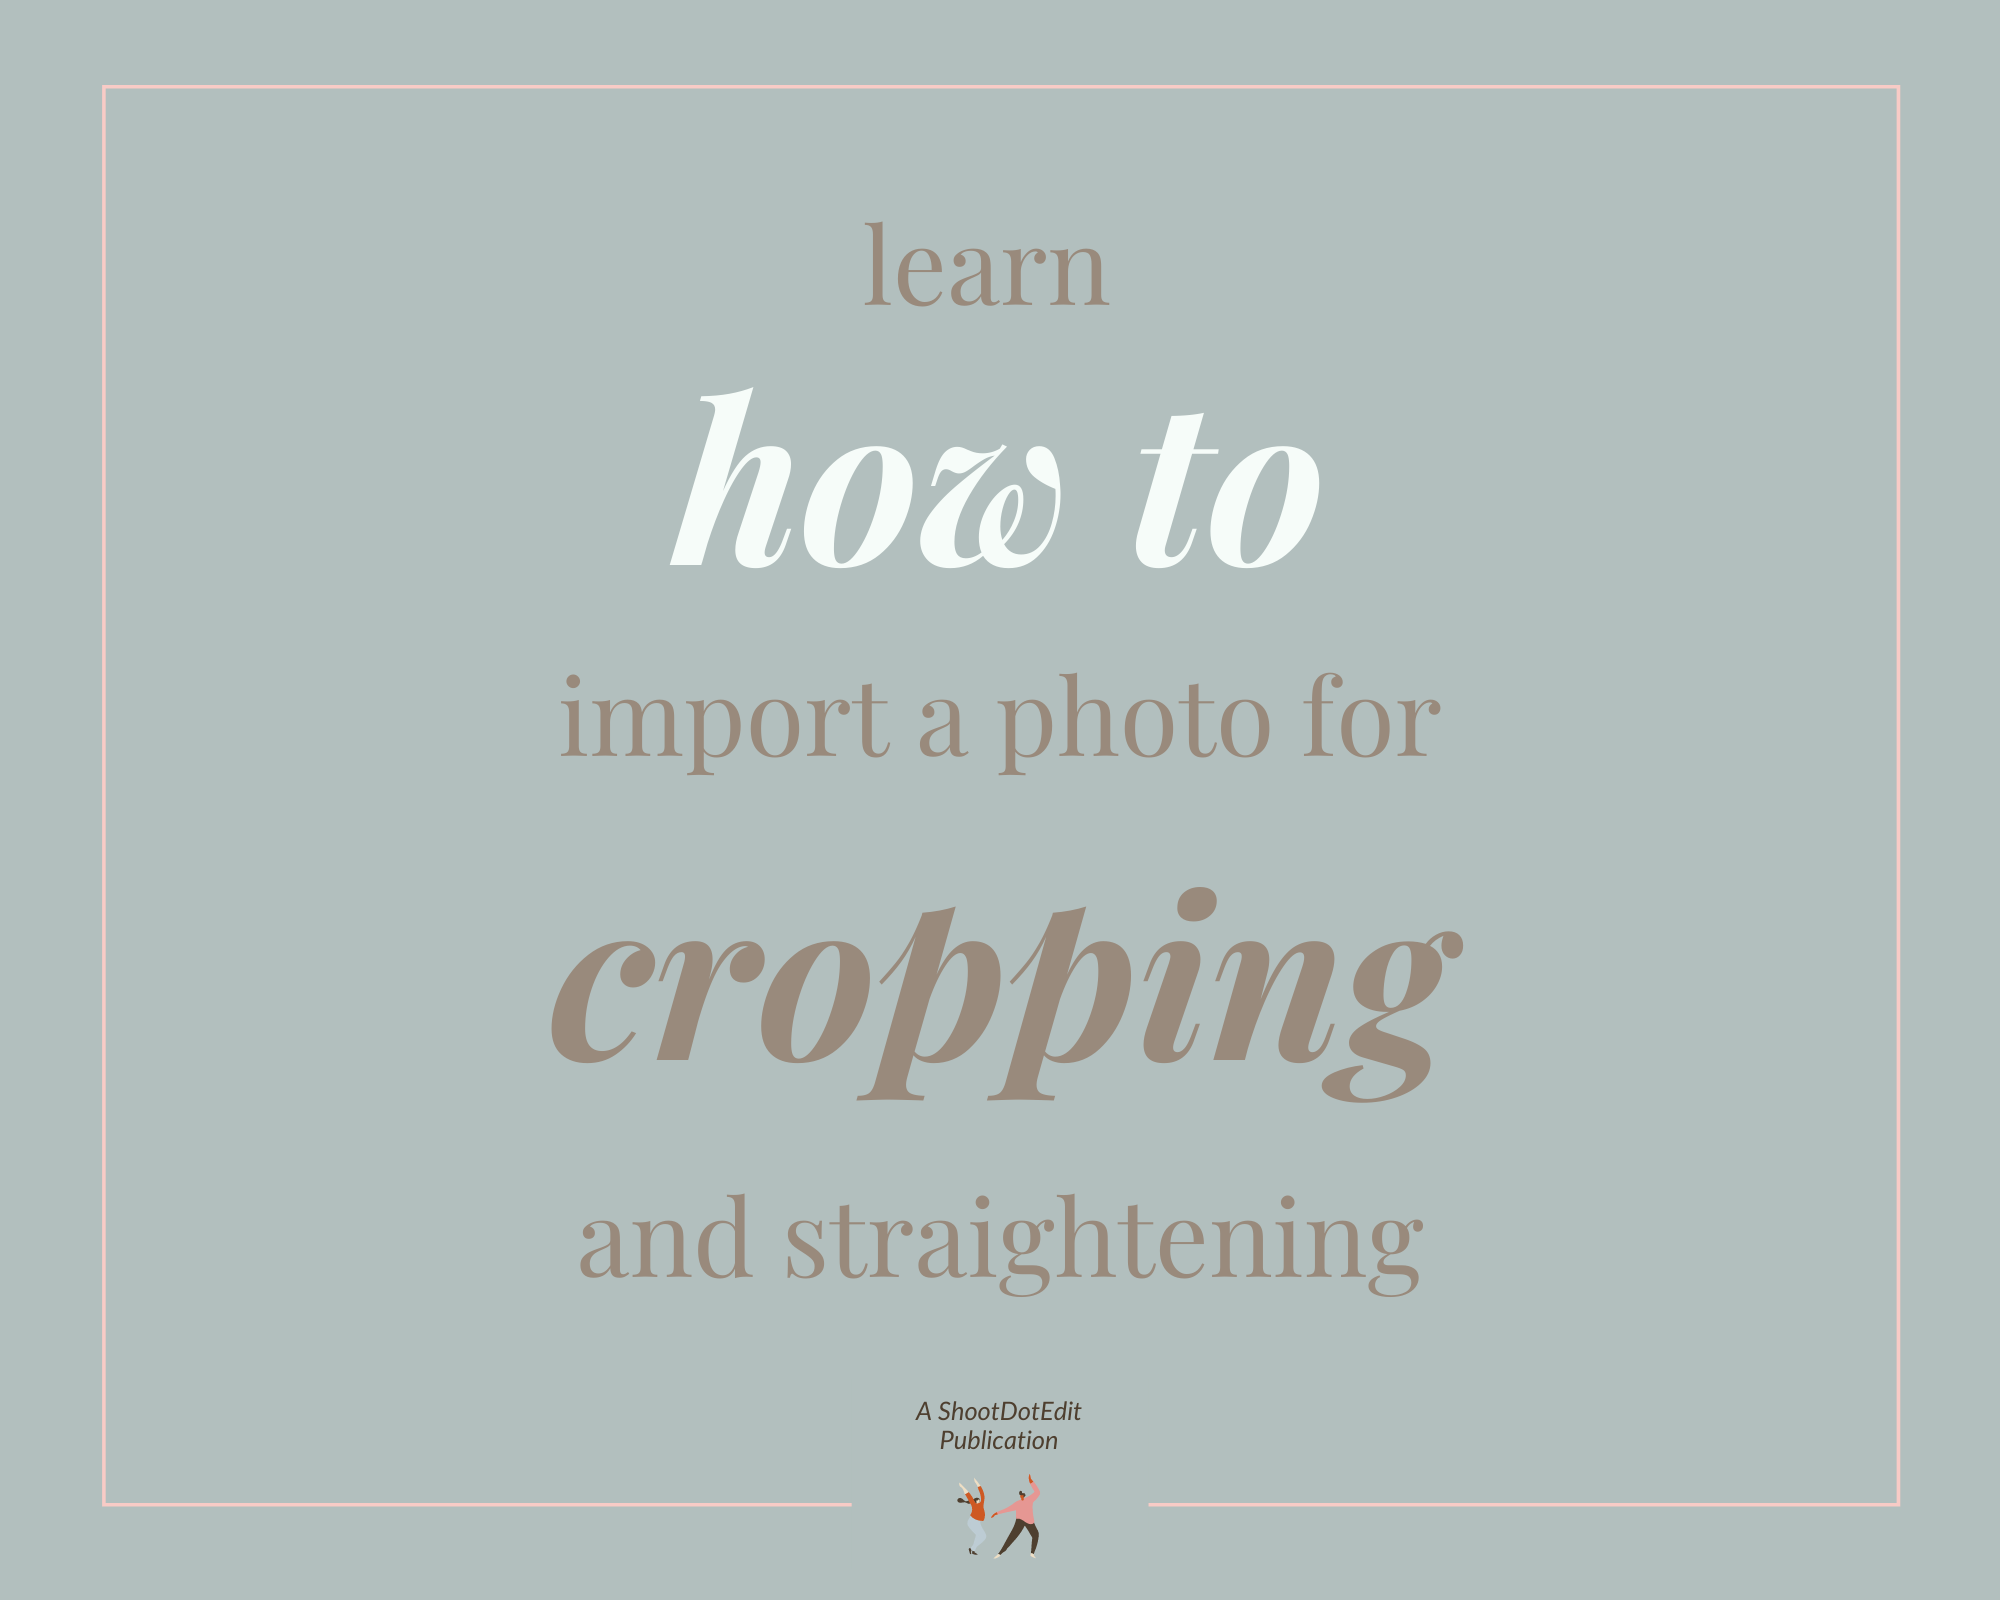 Infographic stating learn how to import a photo for cropping and straightening